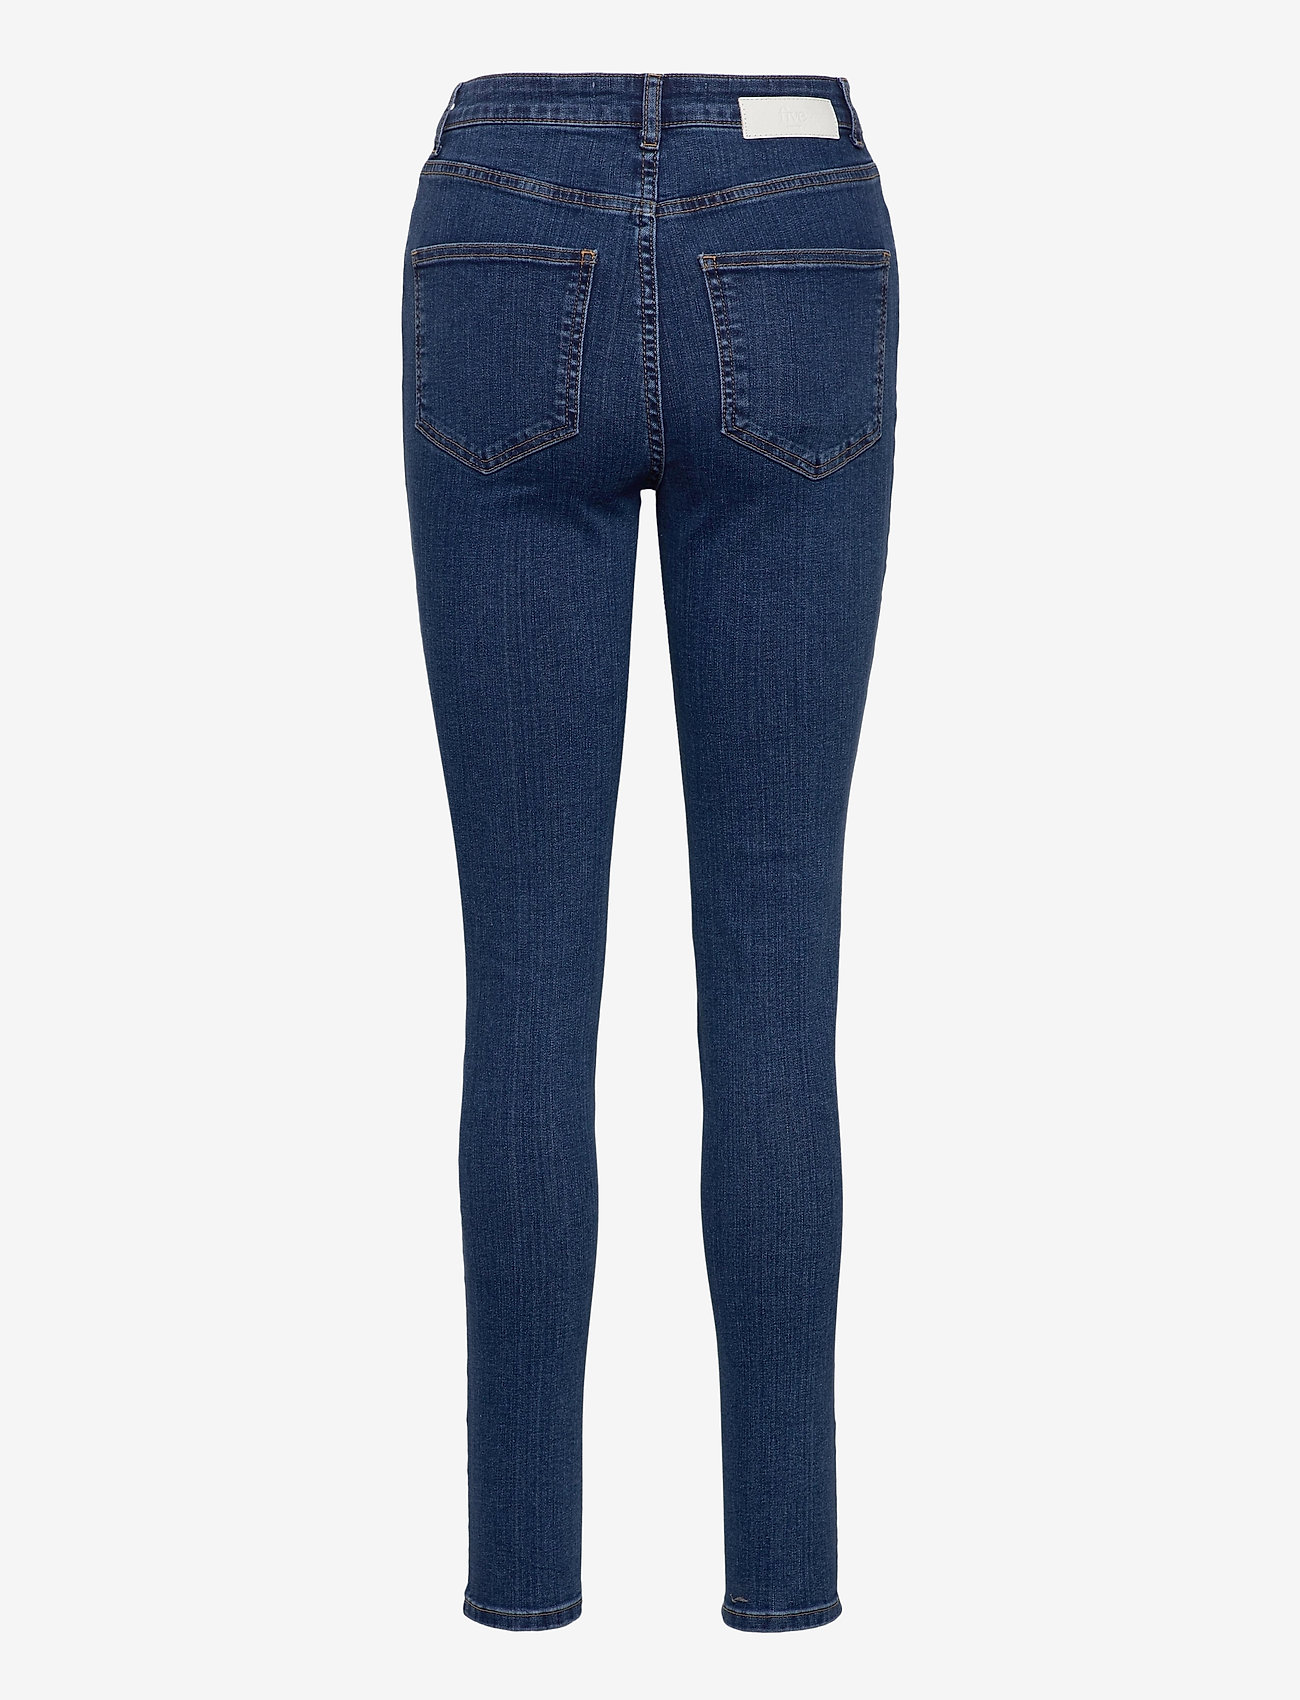 FIVEUNITS - Kate High 749 - skinny jeans - mid blue - 1